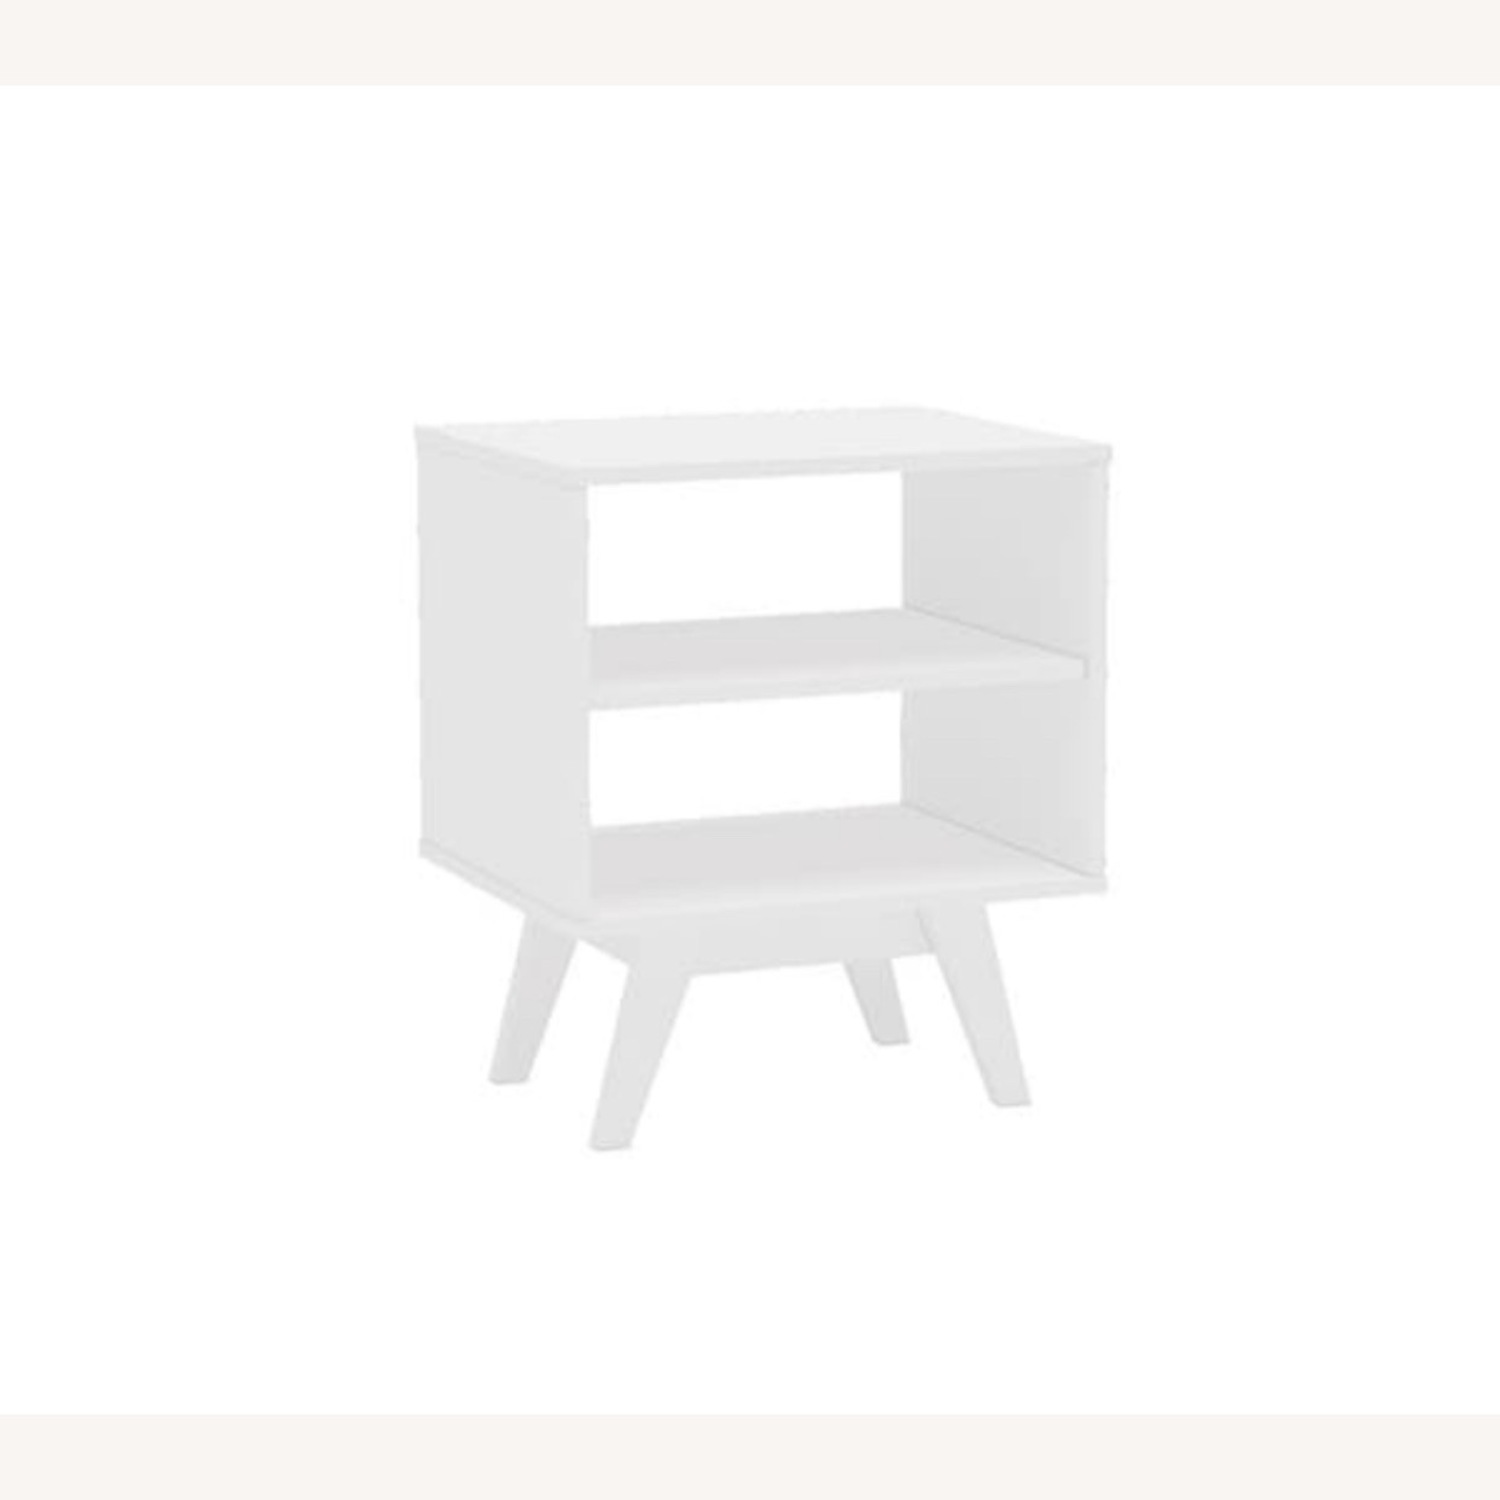 White Night Stands / End Tables Set of 2 - image-1